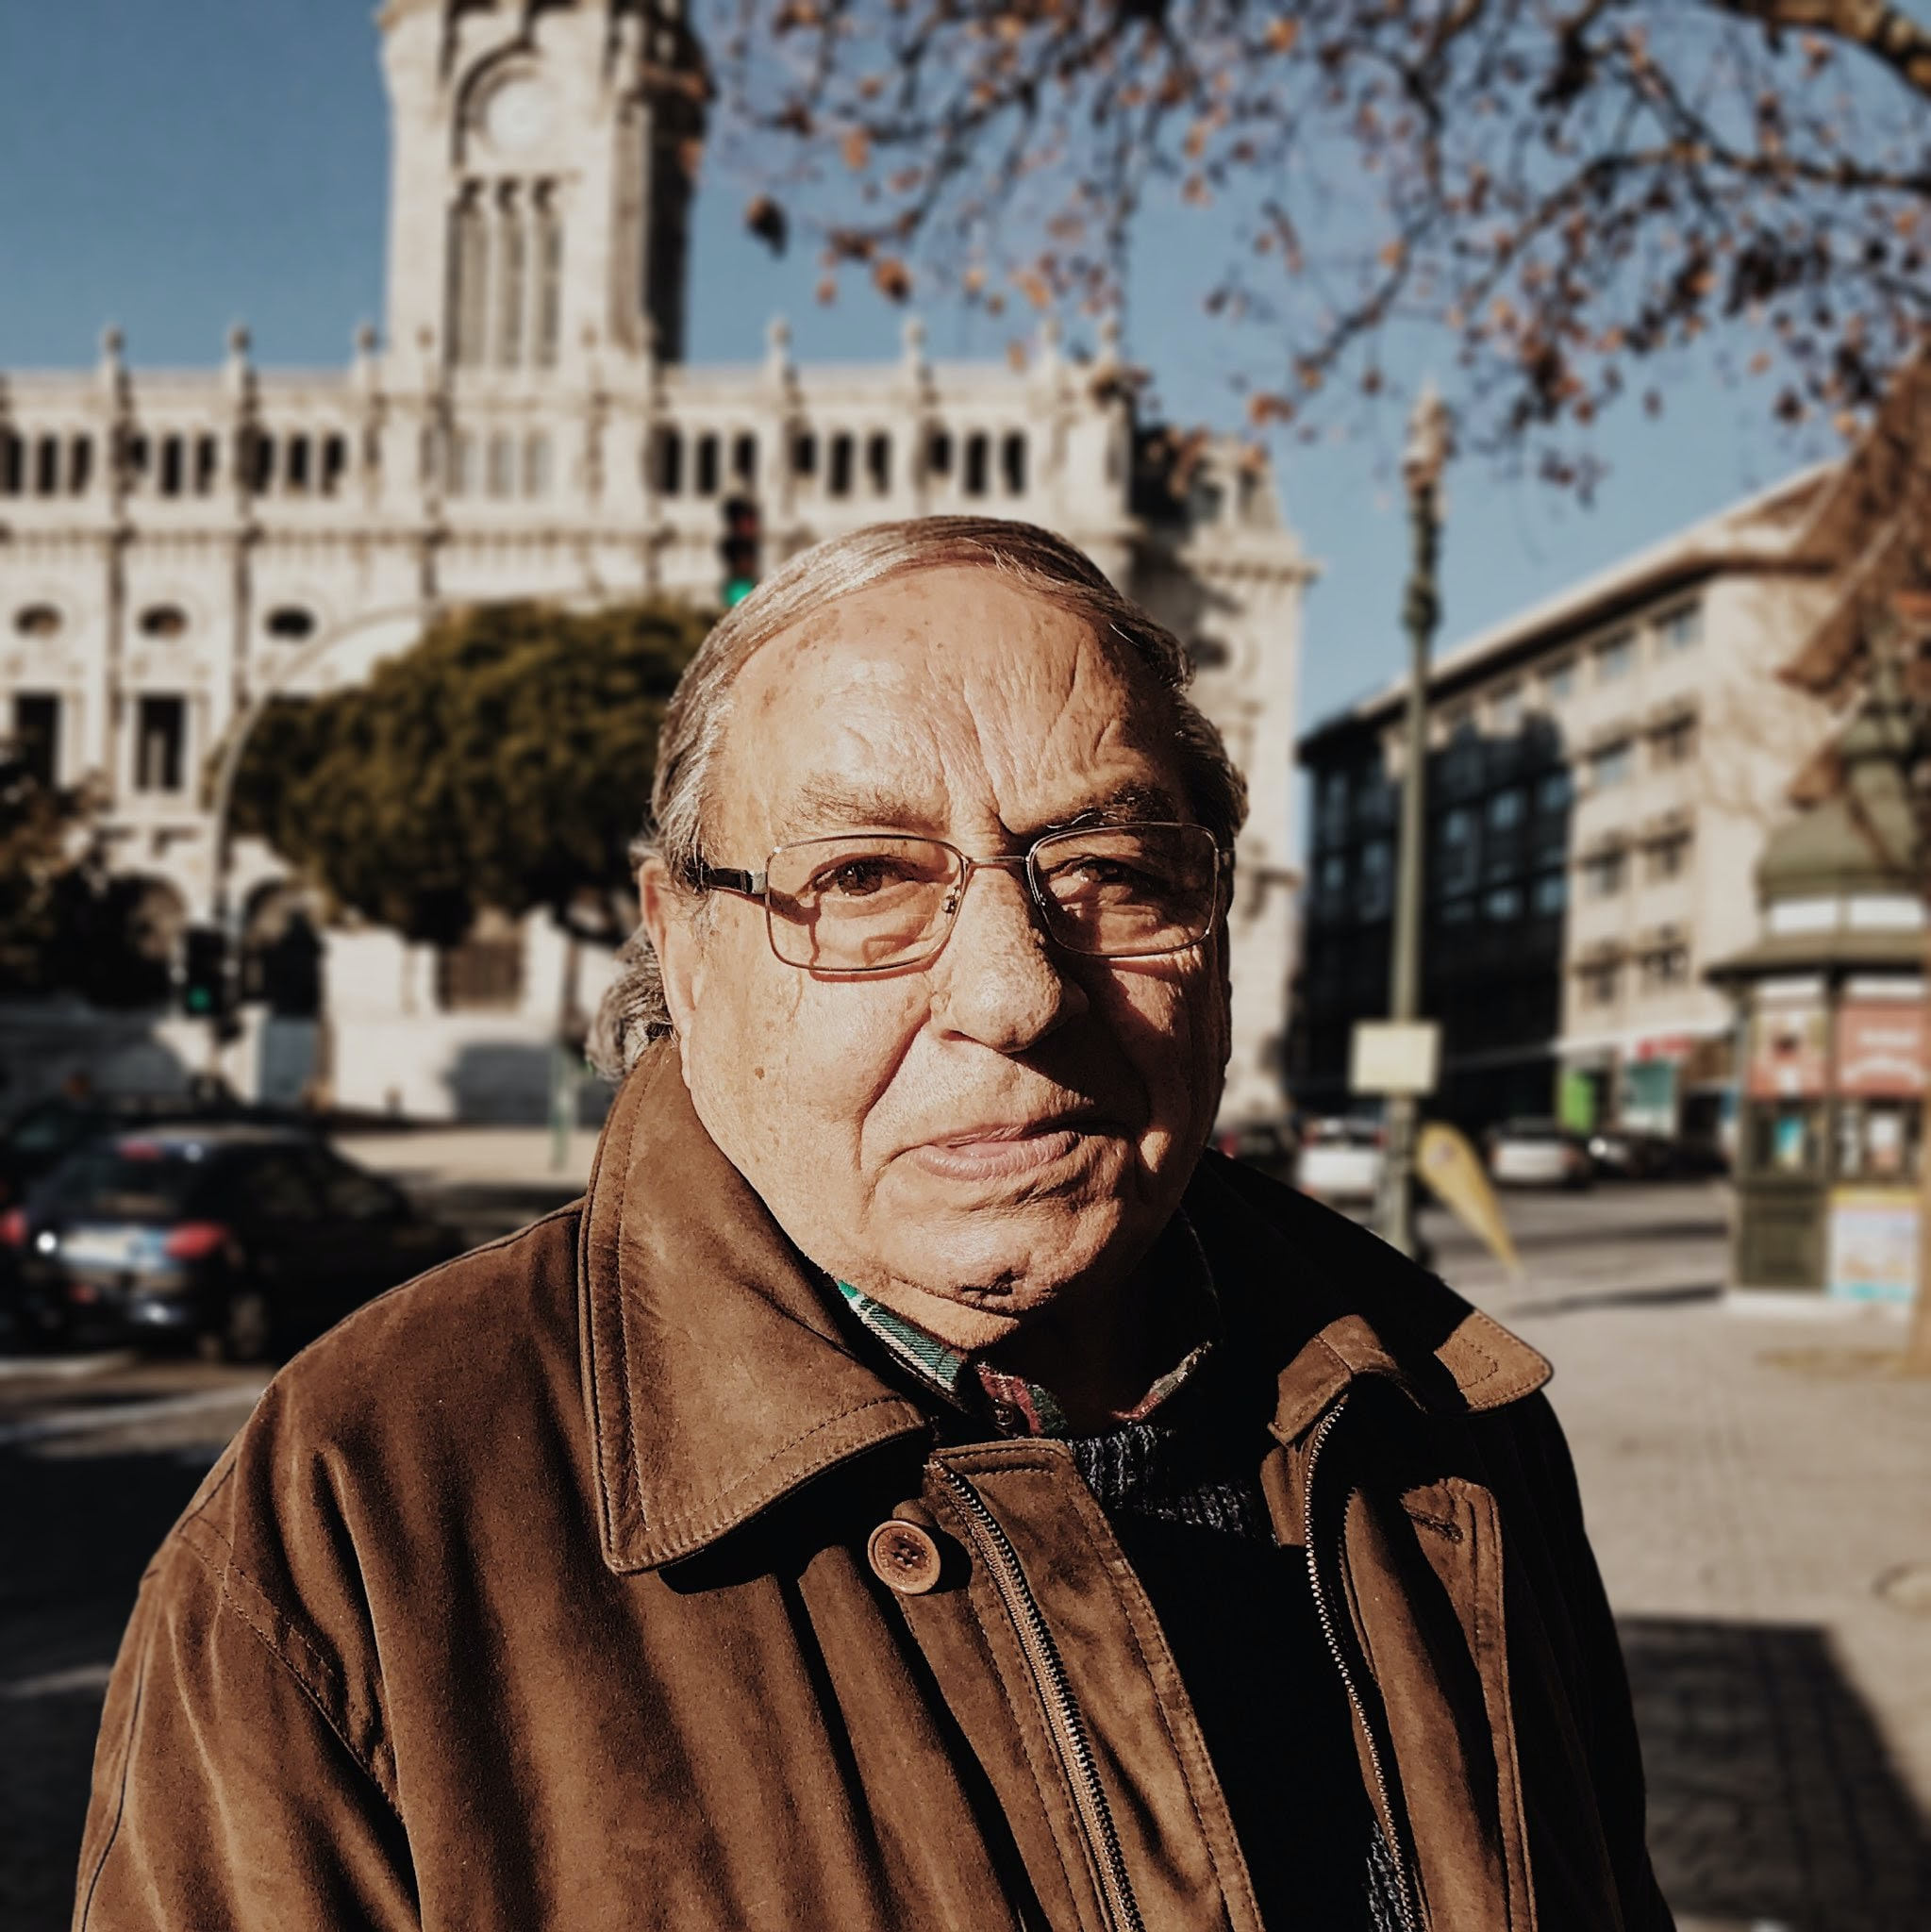 An elderly man with glasses staring blankly with the city behind him.